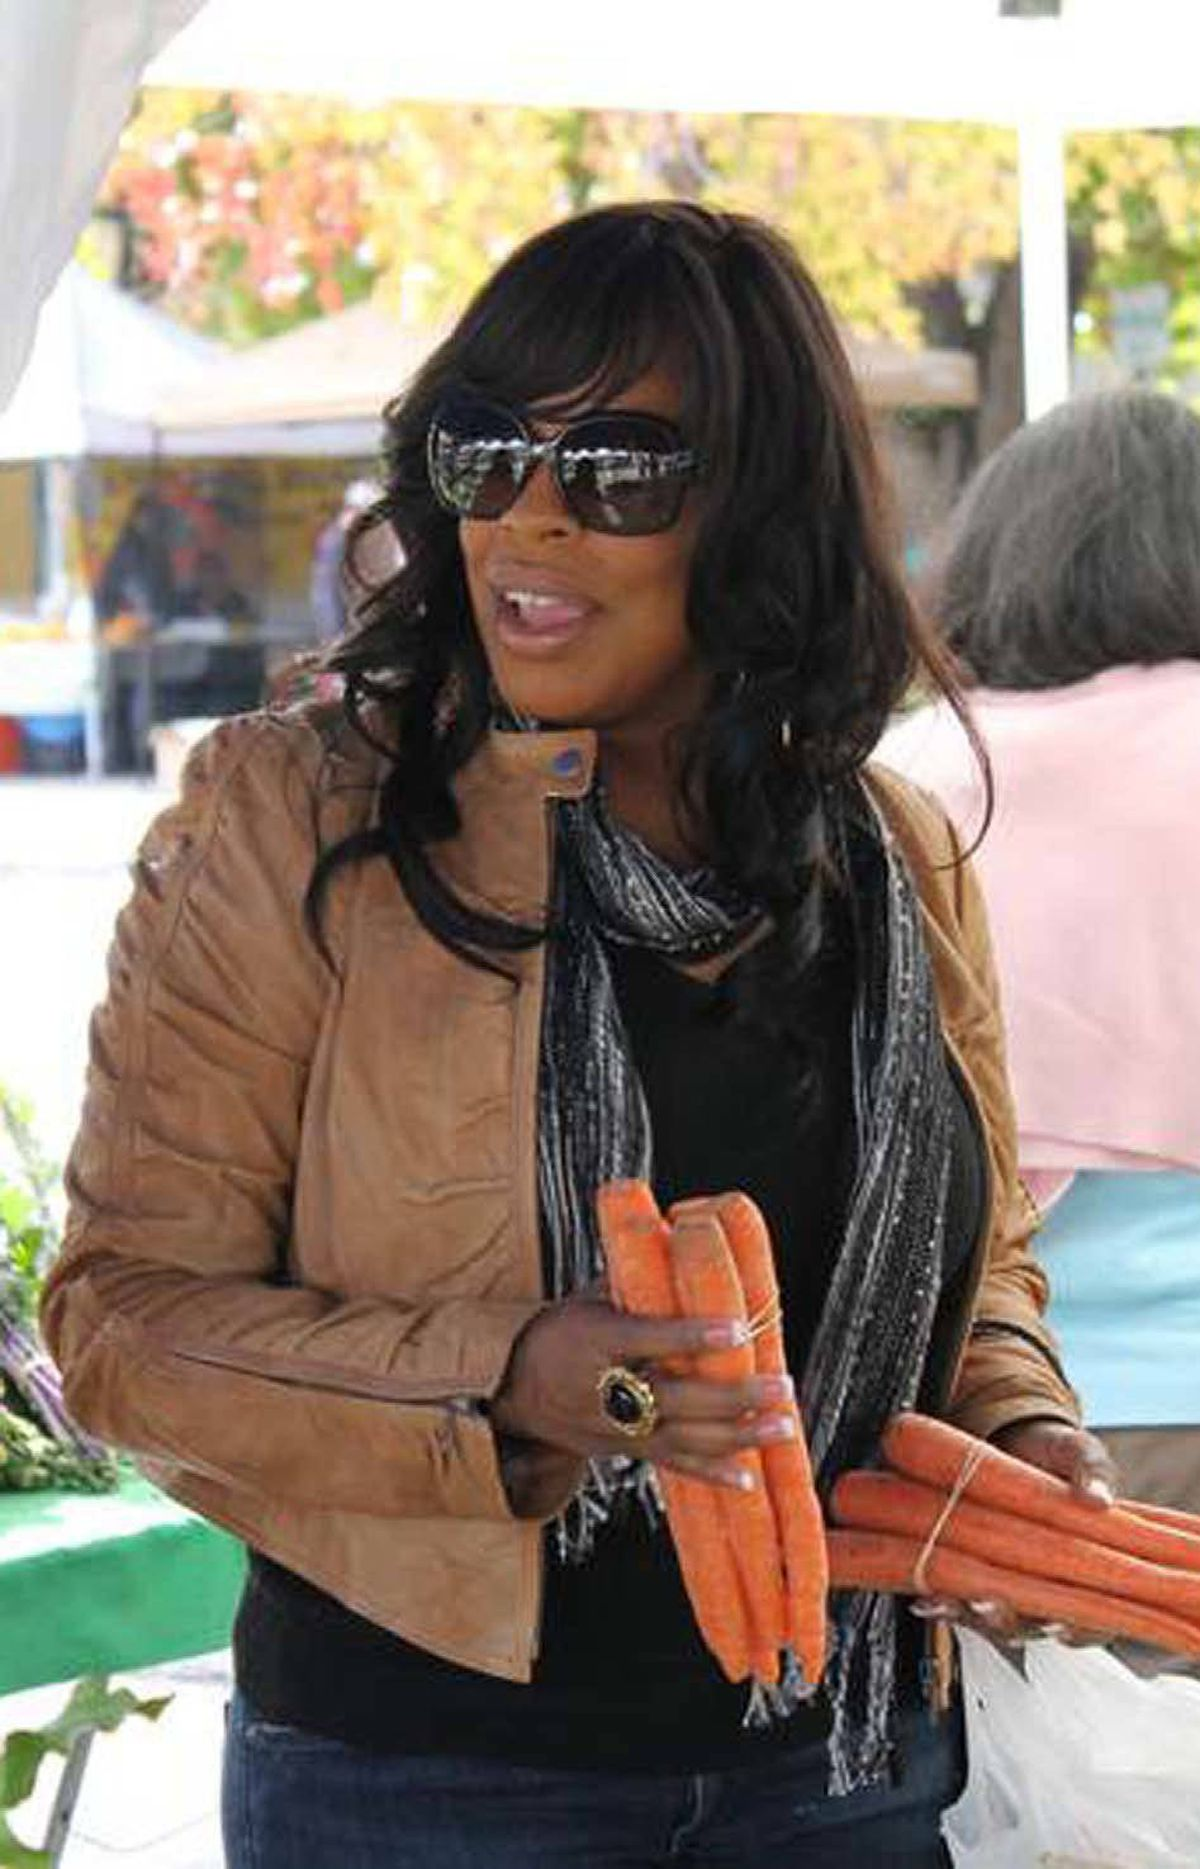 REALITY Leave It to Niecy TLC, 8 p.m. ET; 10 p.m. PT Who is Niecy Nash and why does she have her own reality series? The fortysomething actress has built a career on playing brassy support roles on TV series like The Bernie Mac Show and That's So Raven, and was also a contestant on the 10th season of Dancing with the Stars. This new series documents Niecy's recent marriage to Jay Tucker and the subsequent blending of their respective families, which includes her three children and his young son. And does forced drama arise in this mixed family? In tonight's first show, Niecy tries to force her spoiled kids to bond with their new stepfather. In the second show, she tries to get the entire family eating healthily, but everyone is too hooked on junk food. You go, girl!